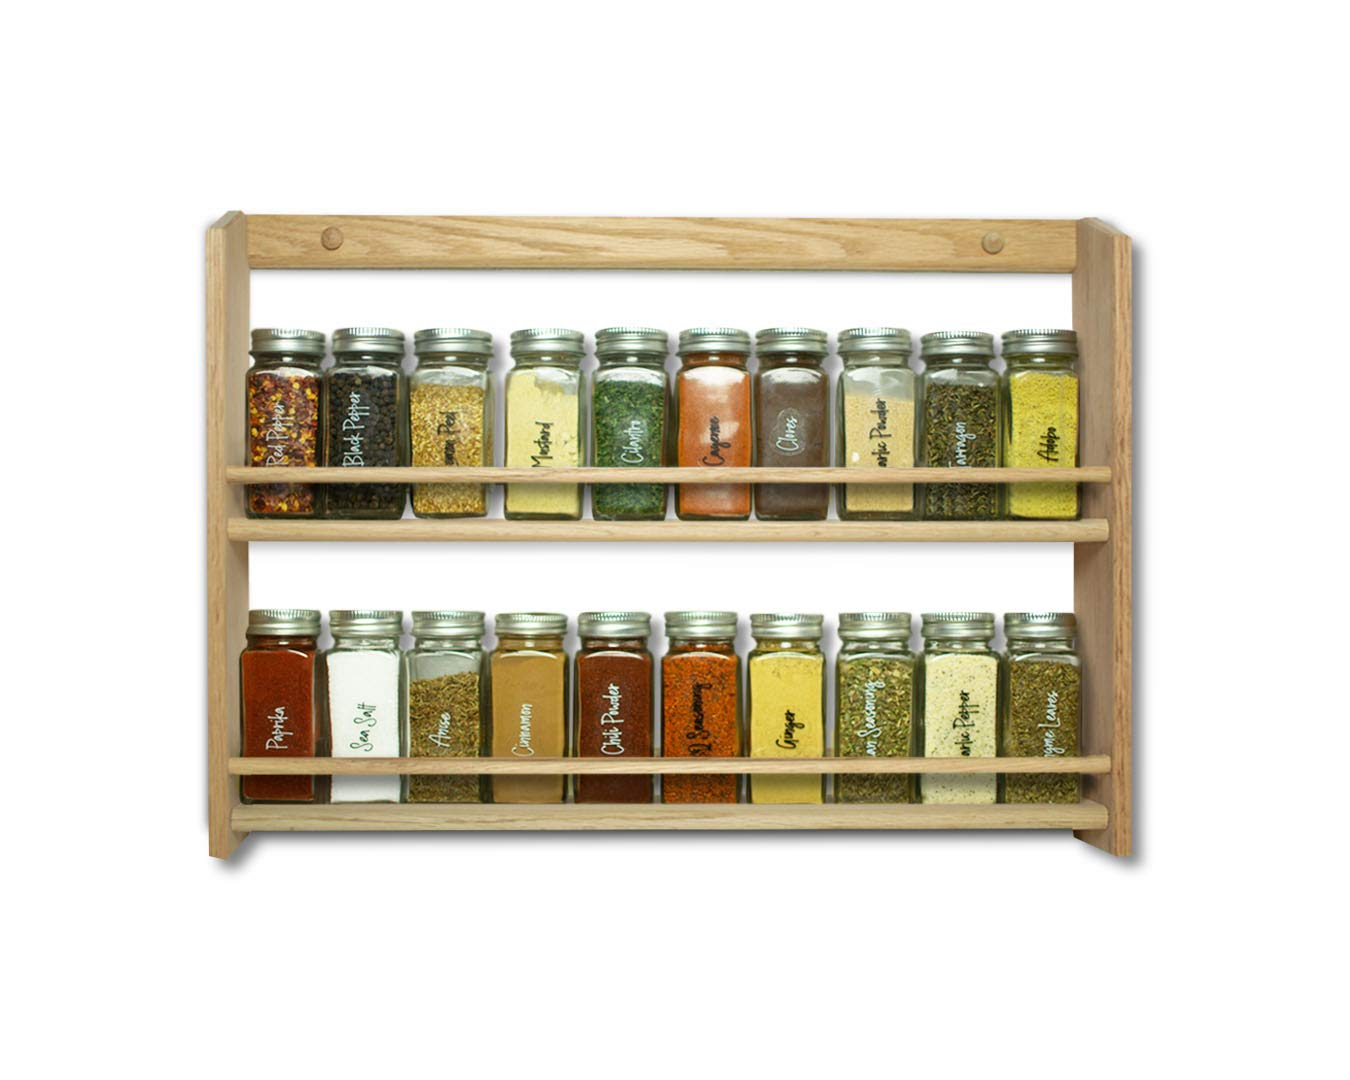 Buy Ems Solid Oak Wood Spice Rack Organizer 2 Tier Wall Mounted Seasoning Storage For Pantry And Kitchen Natural Finish 14 25 H X 20 W X 2 75 D Online At Low Prices In